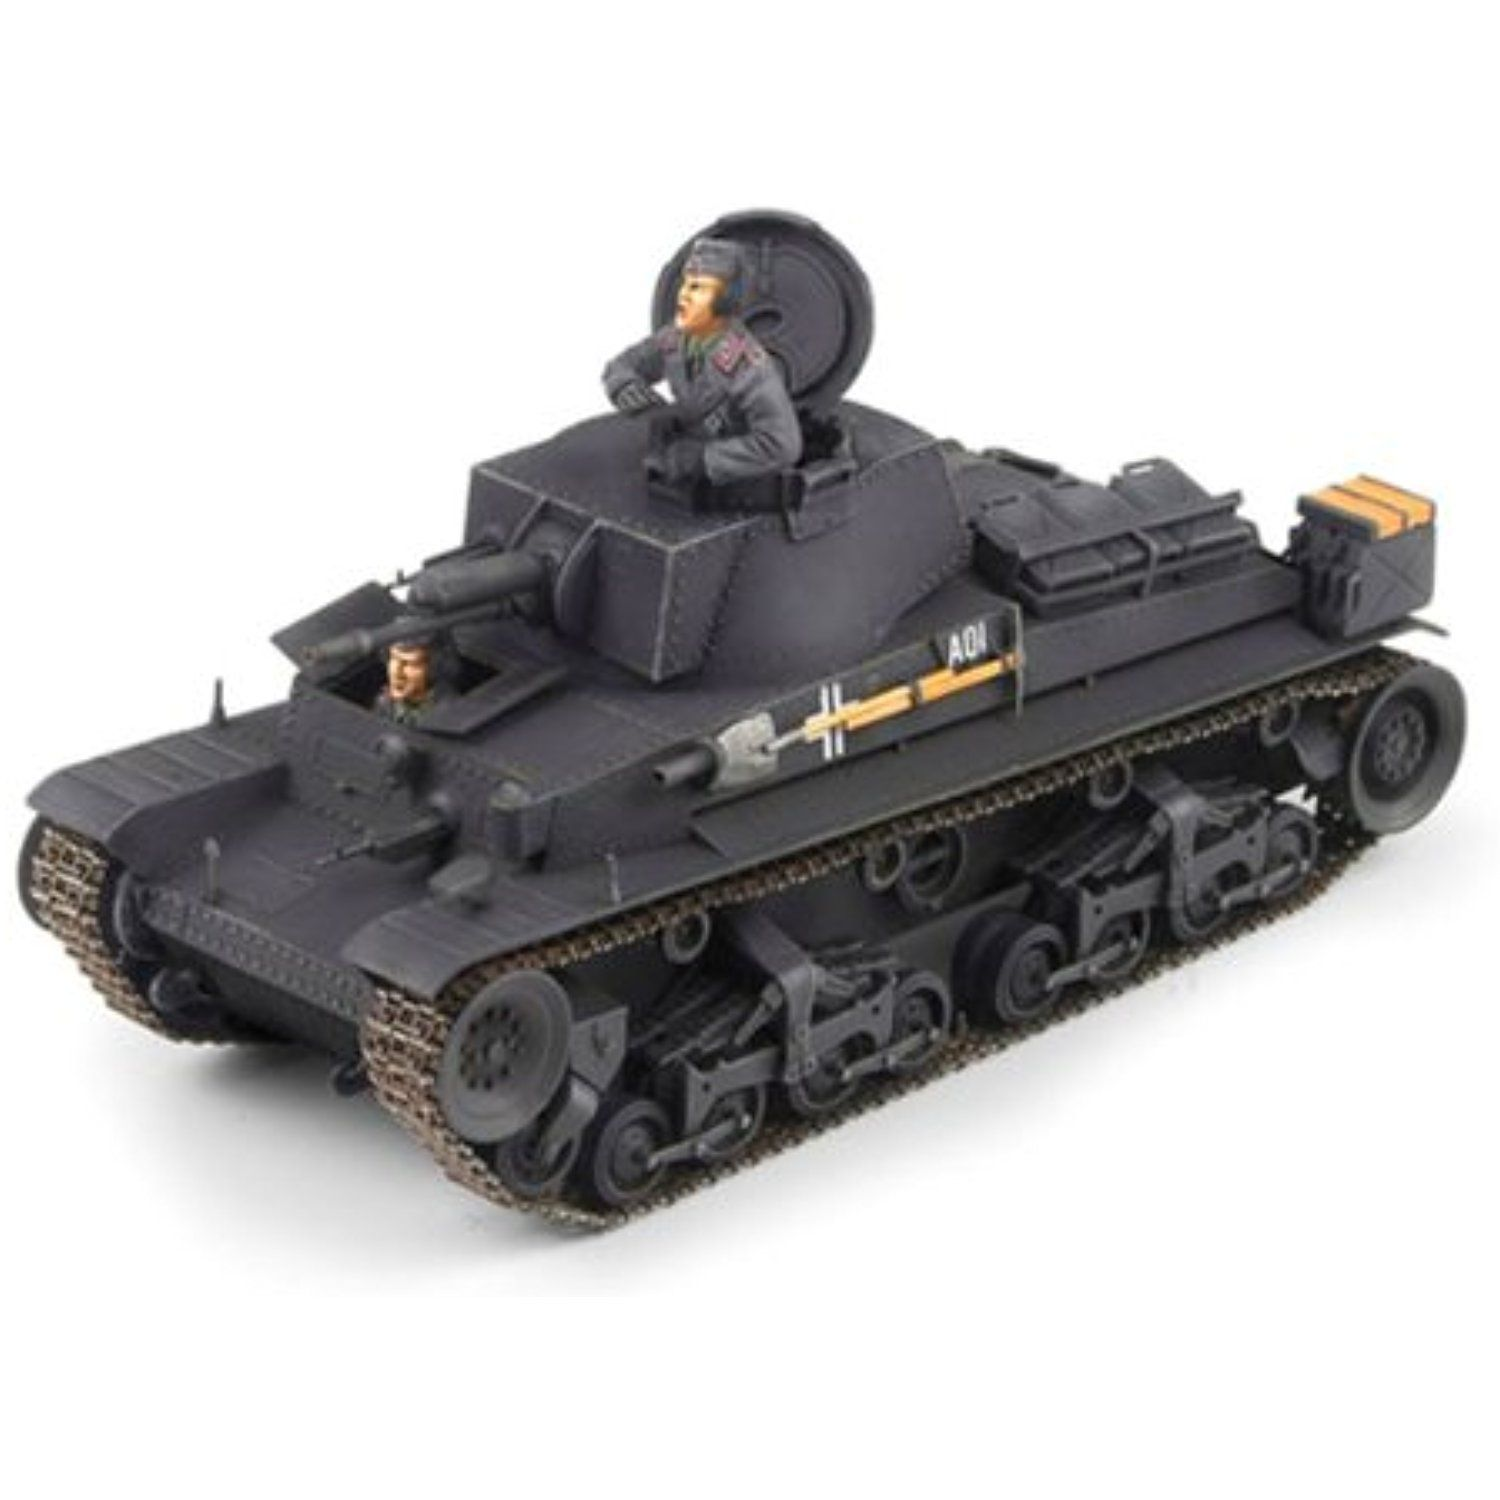 Academy German Light Tank Pz.Kpfw. 35(t) Military Land Vehicle Model ...